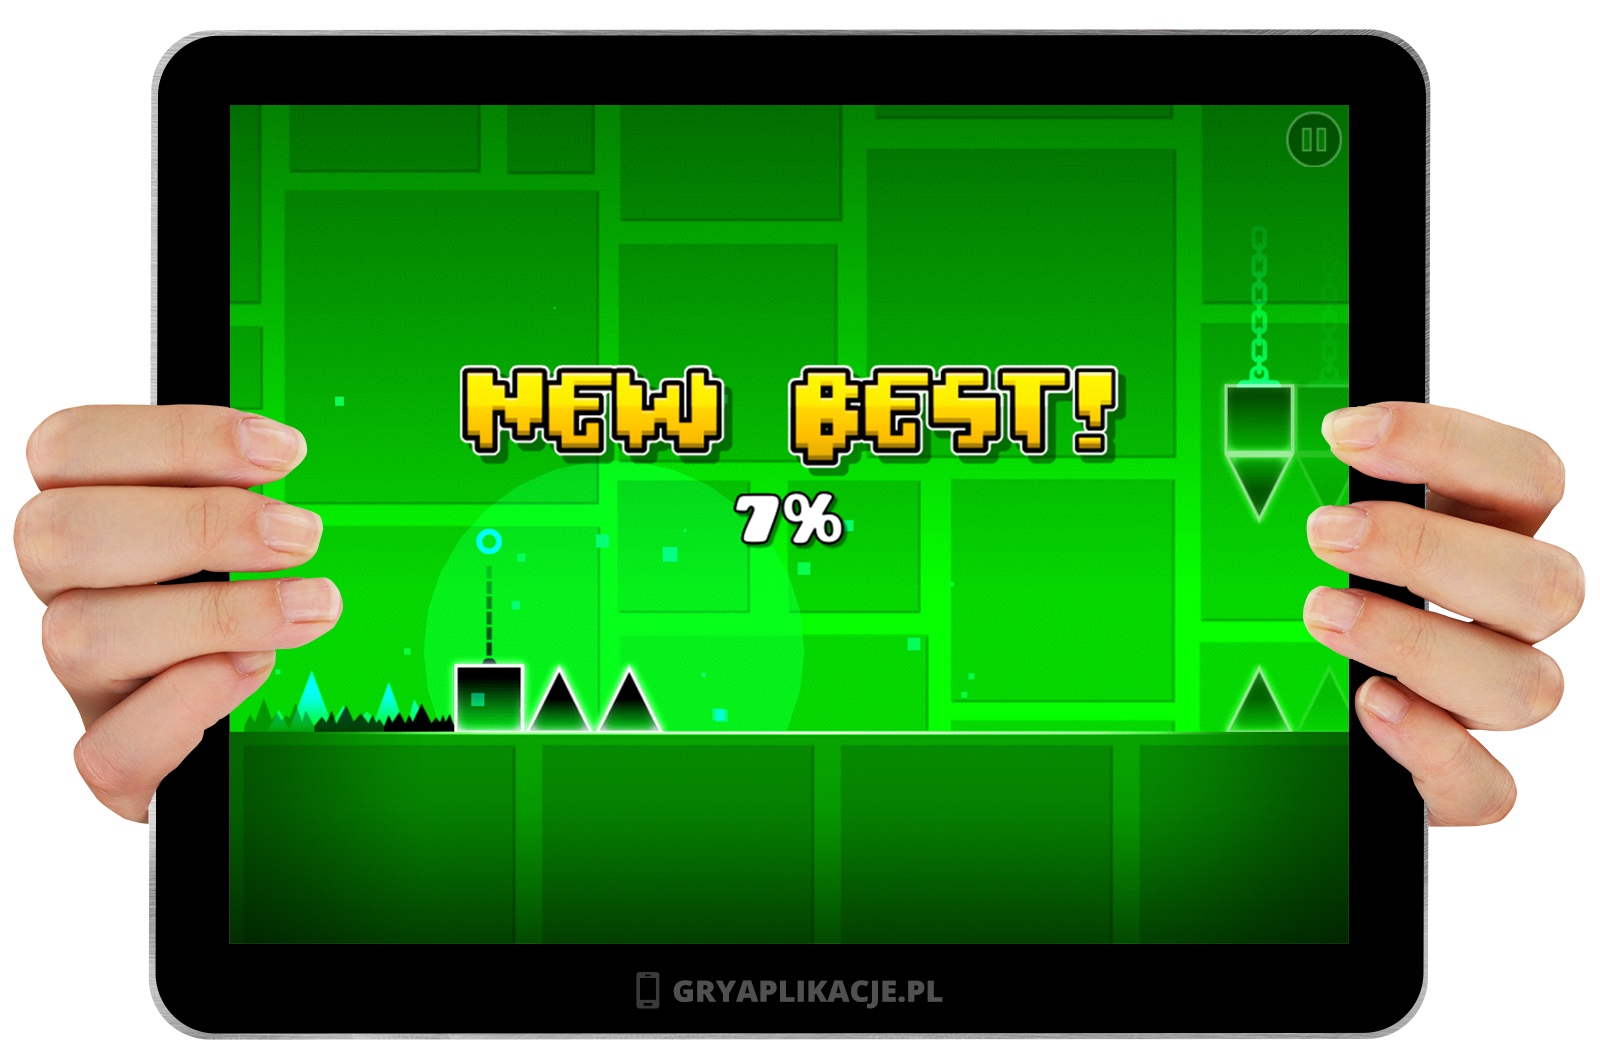 Image currently unavailable. Go to www.generator.granthack.com and choose Geometry Dash image, you will be redirect to Geometry Dash Generator site.